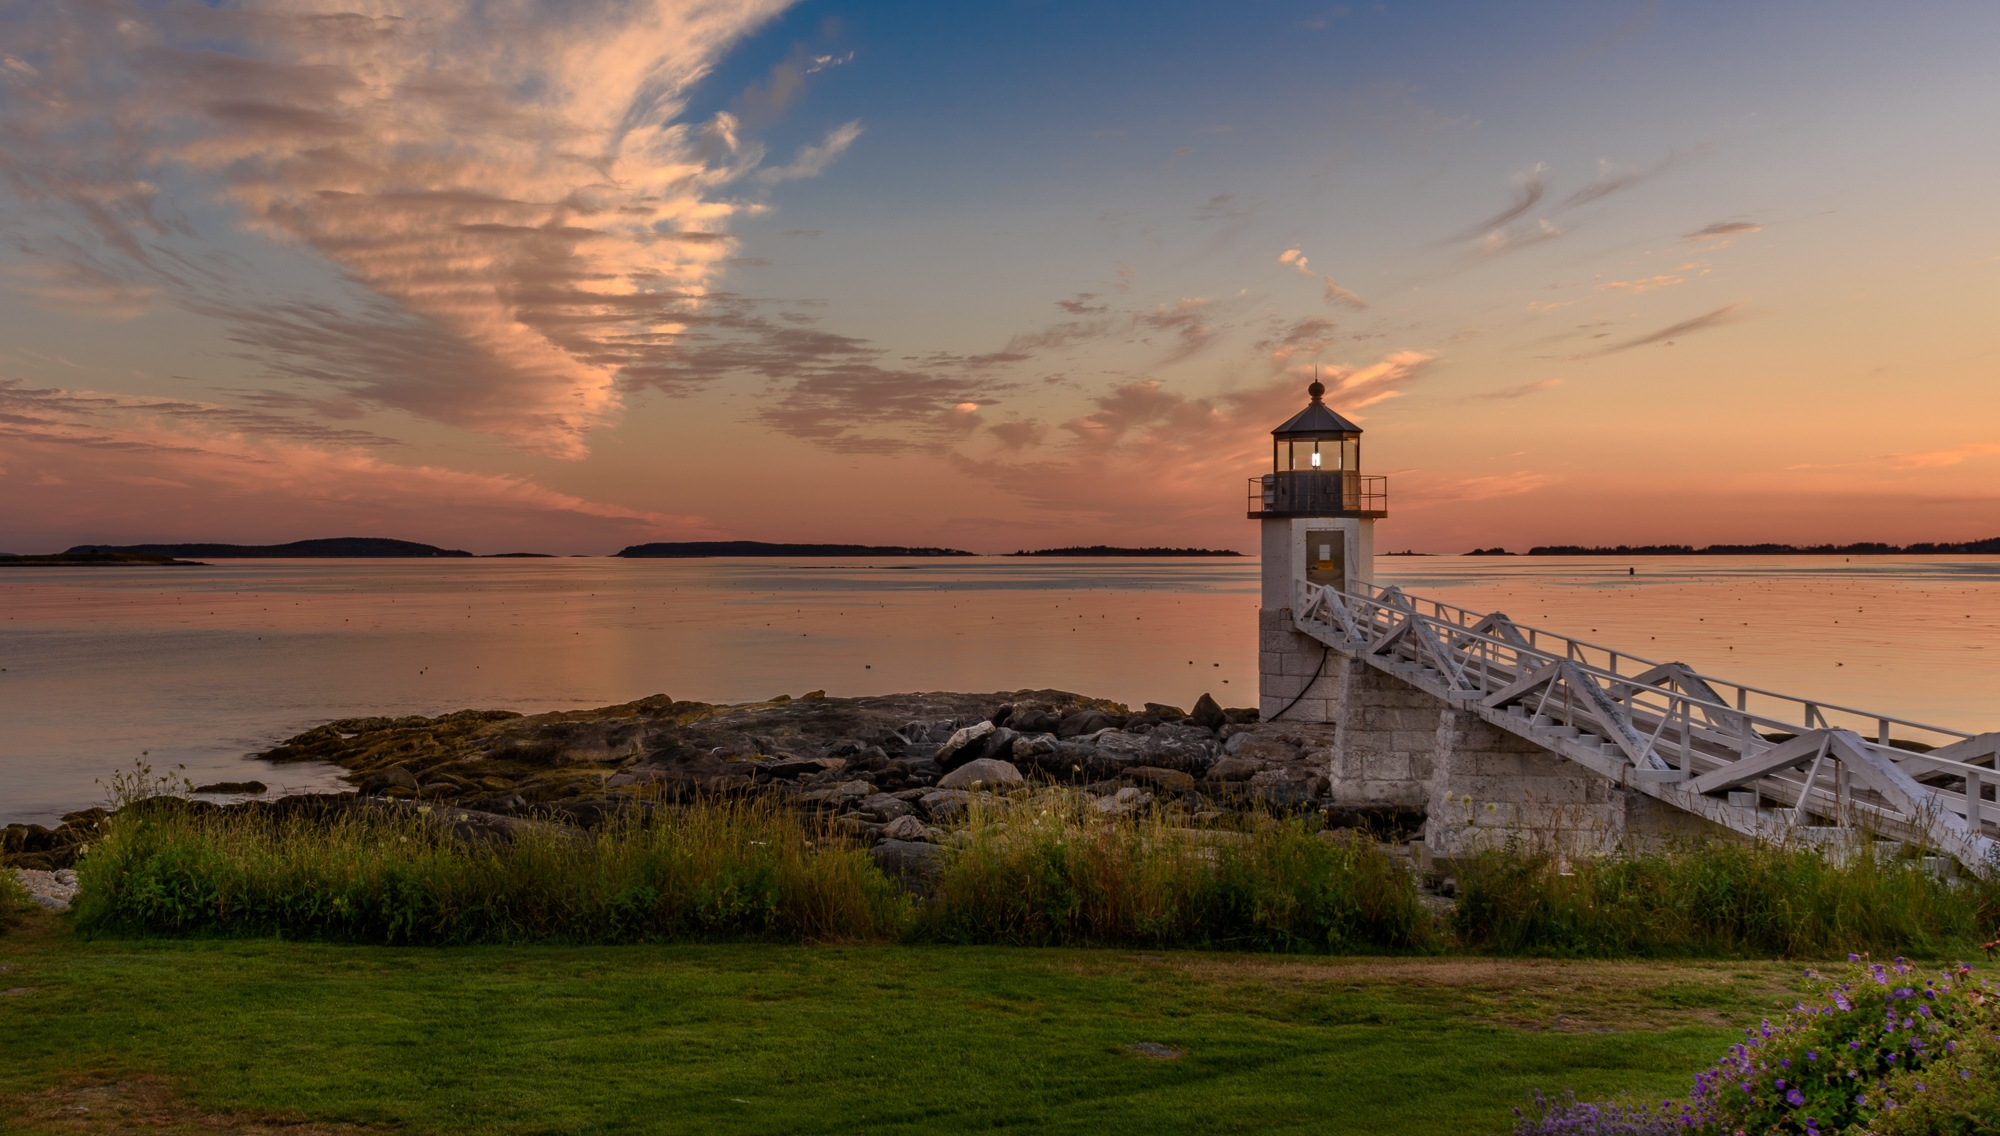 Marshall Point Lighthouse at Sunset by Steve Director